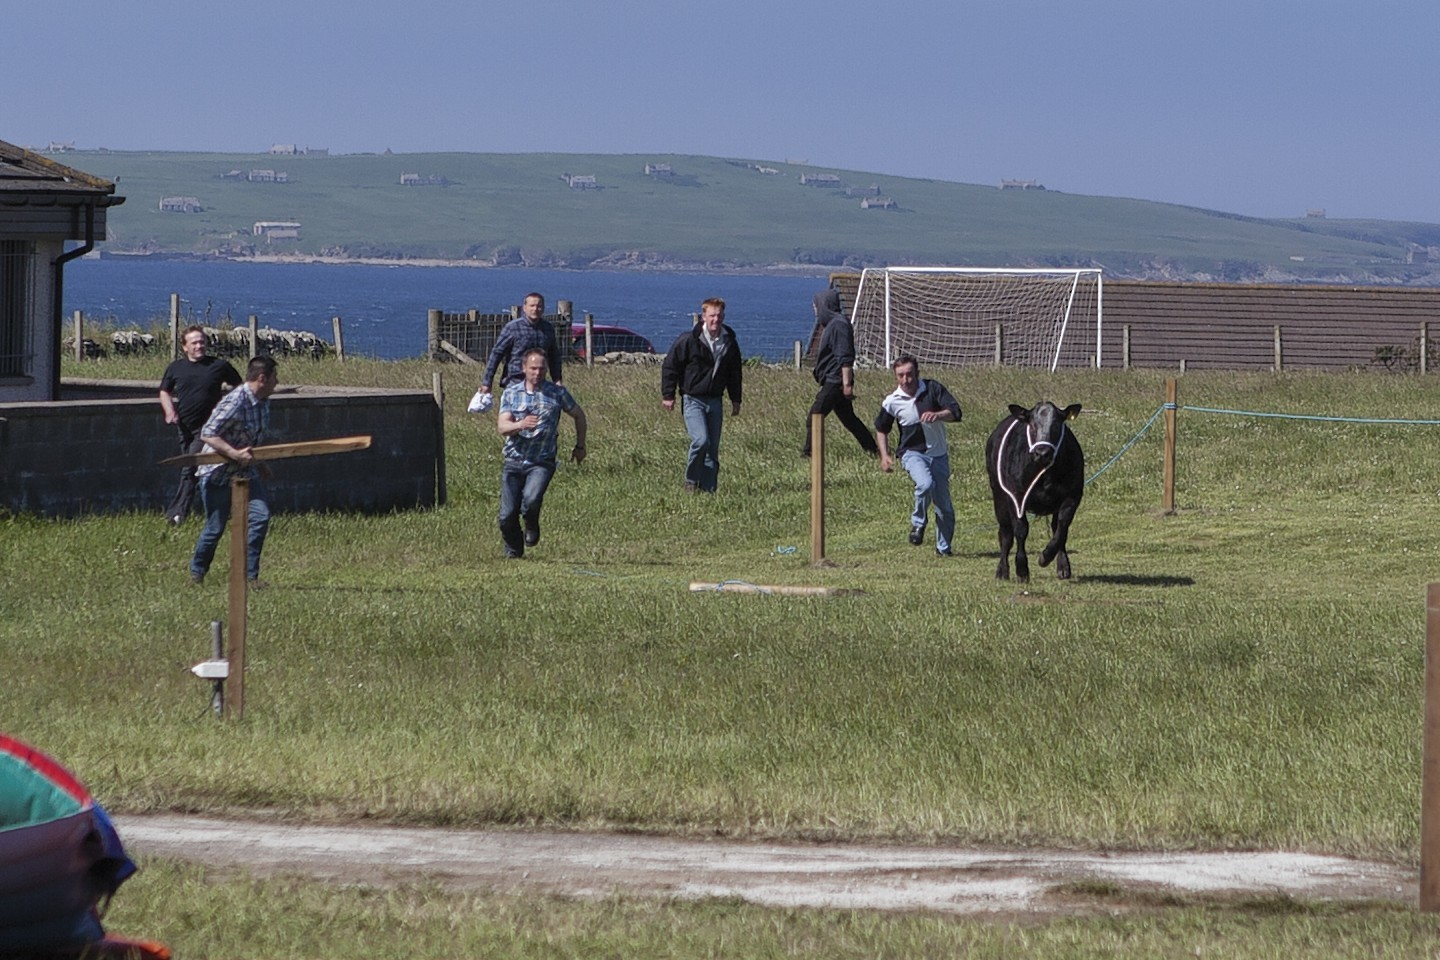 The runaway bull at Canisbay Show in Caithness